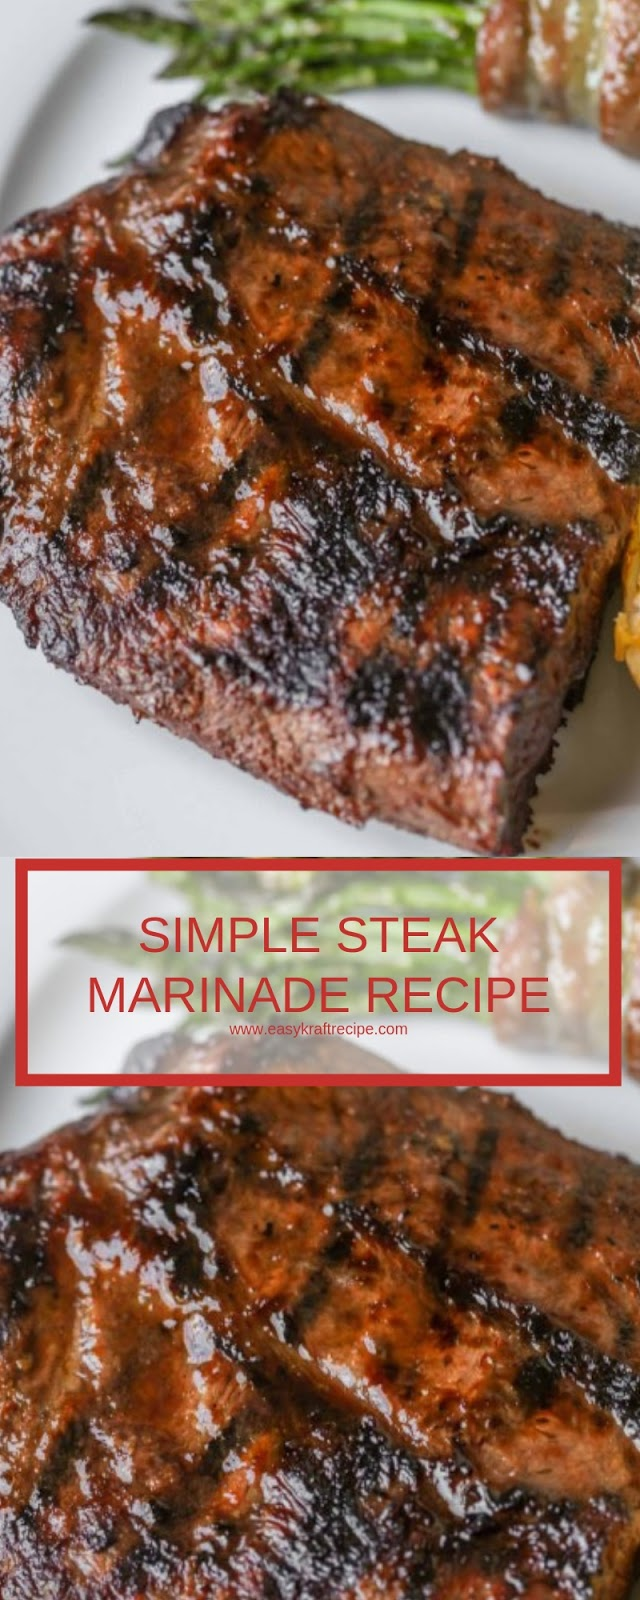 SIMPLE STEAK MARINADE RECIPE